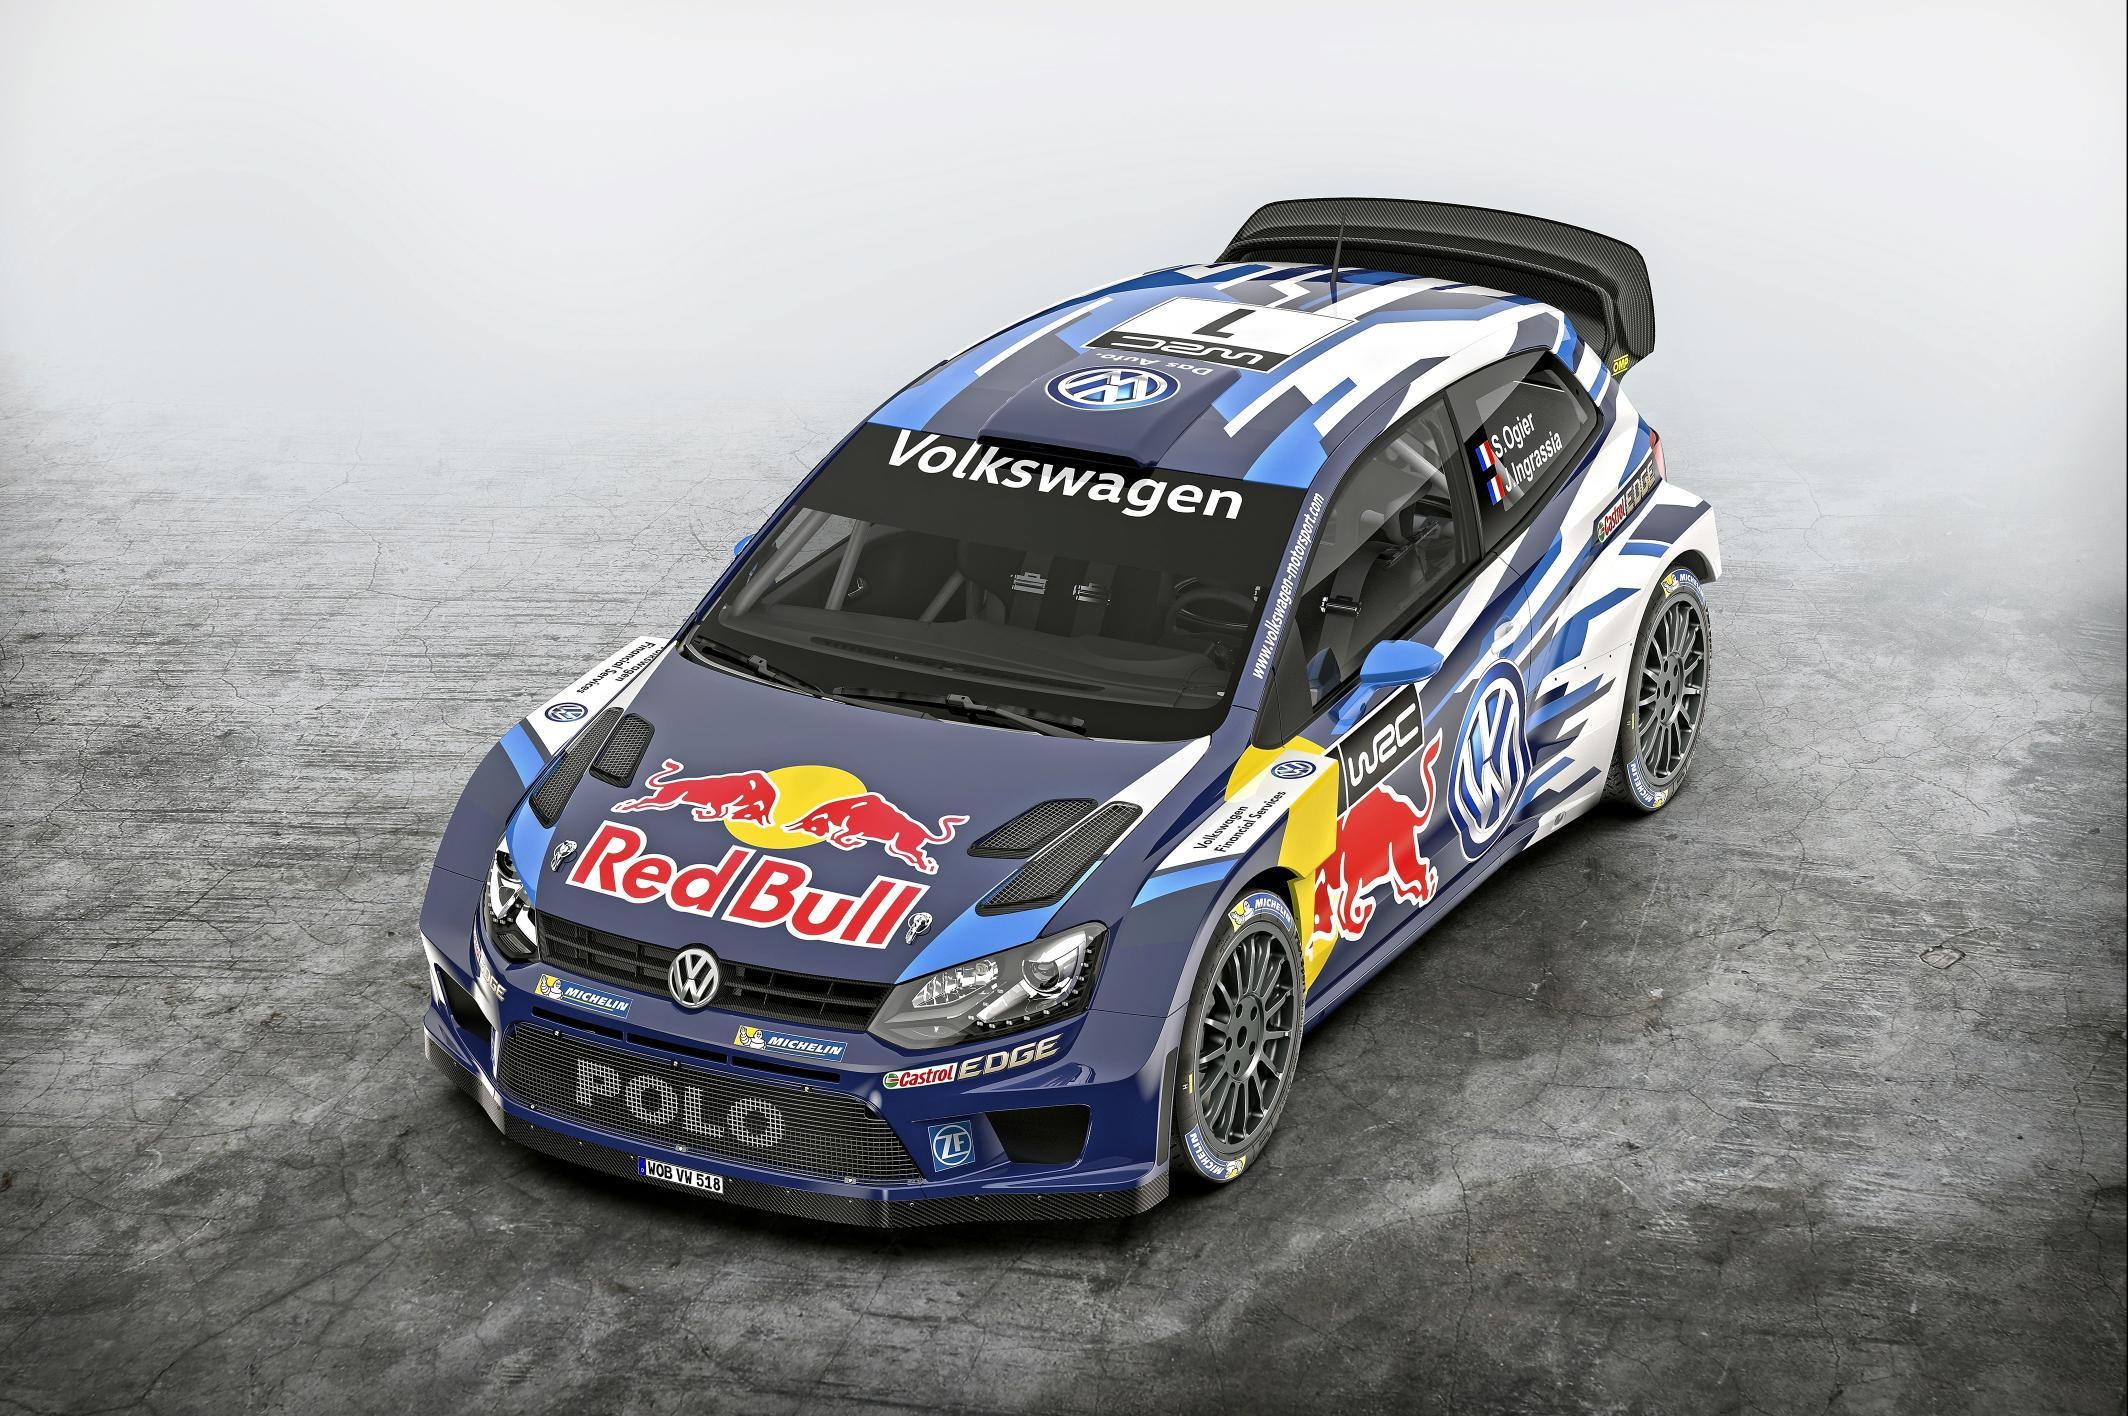 volkswagen unveils 2015 polo r wrc with dark blue livery. Black Bedroom Furniture Sets. Home Design Ideas